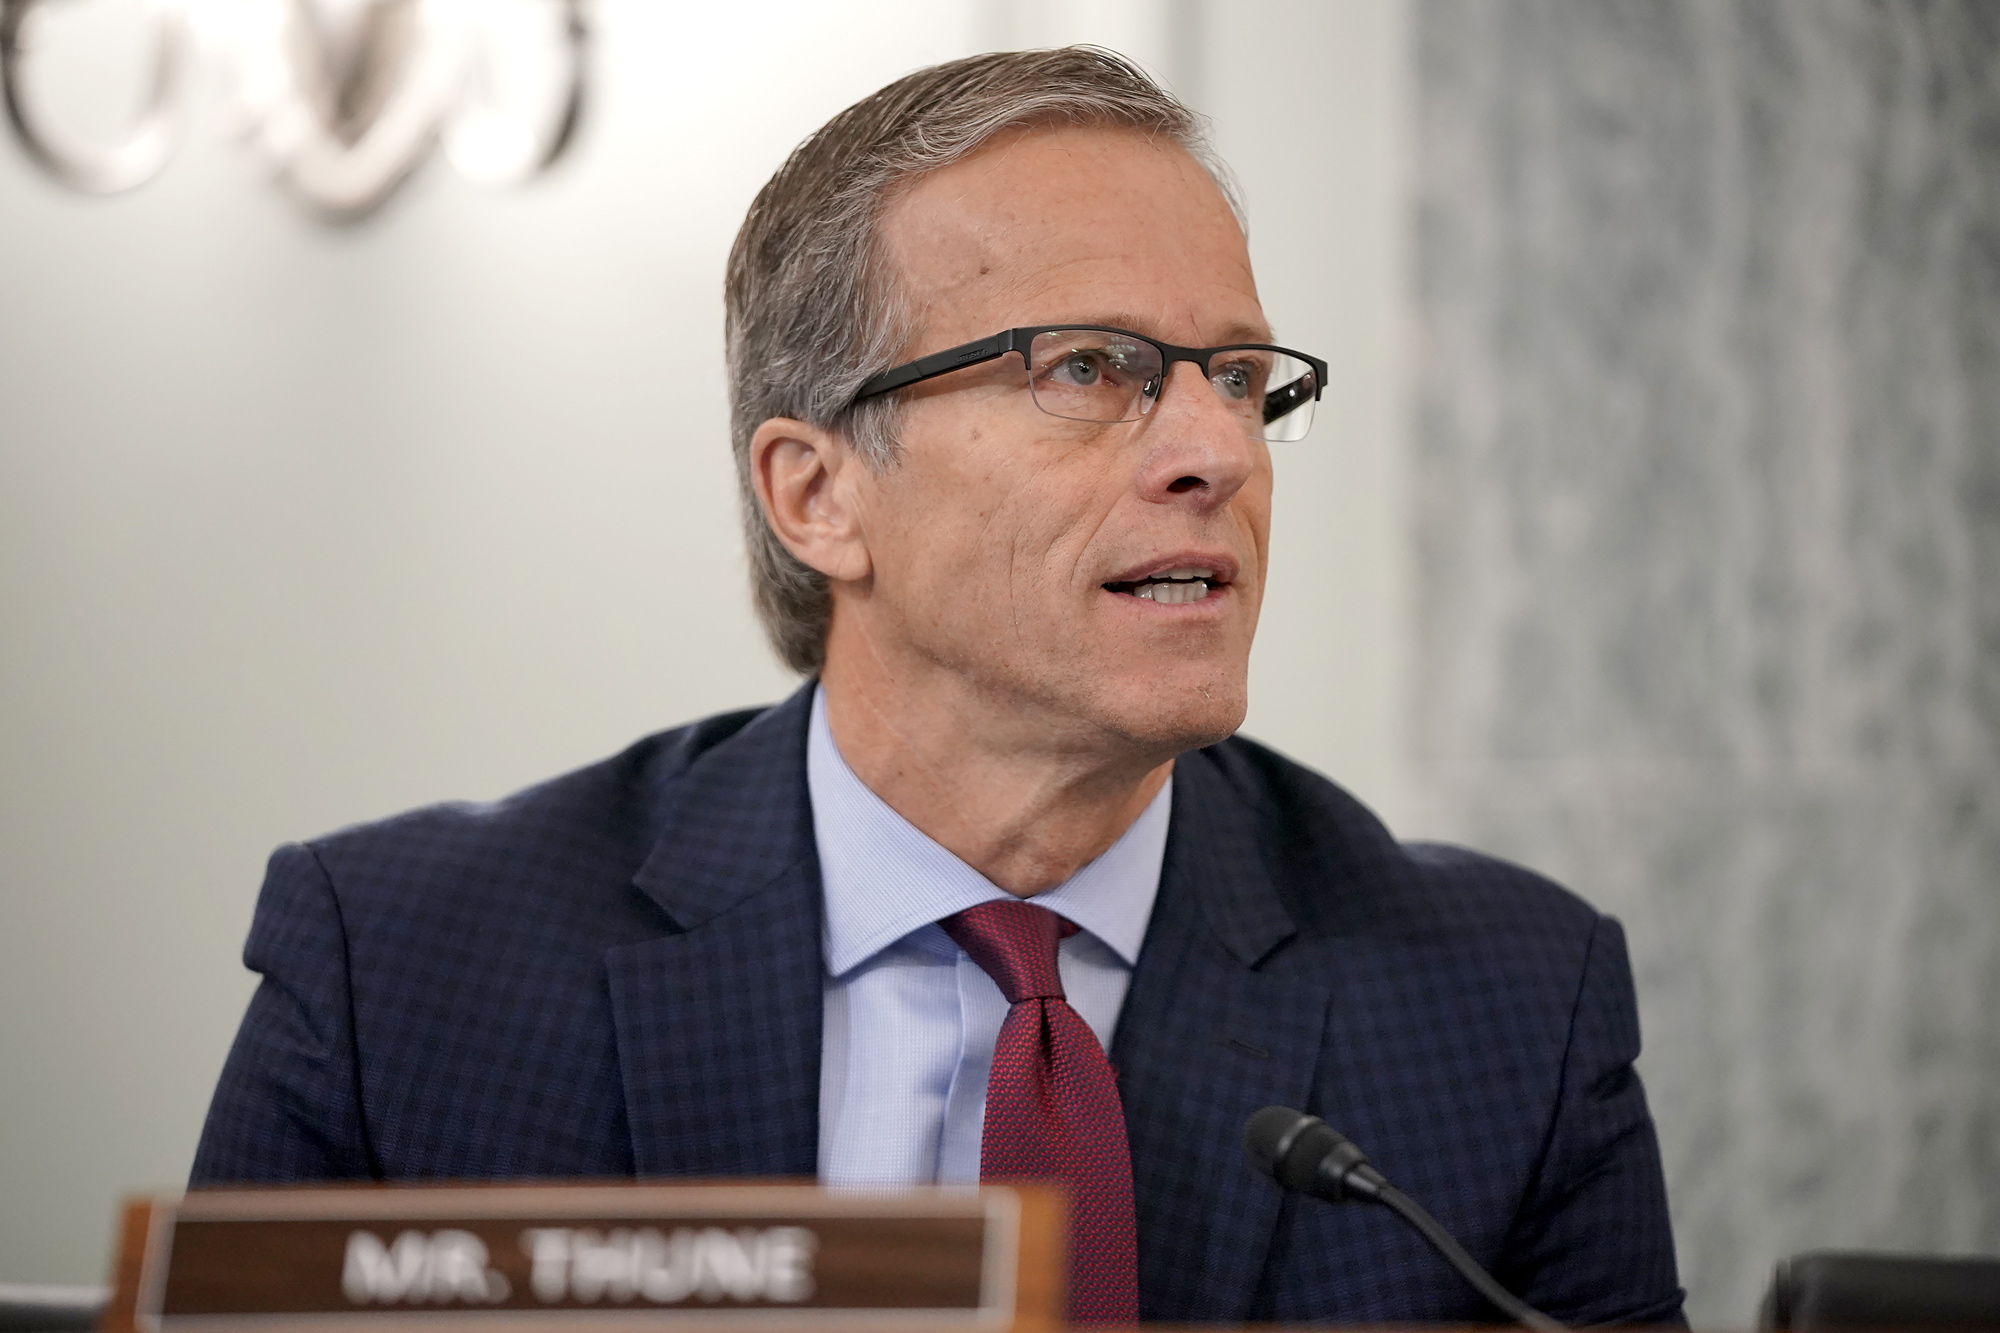 Sen. John Thune asks questions during a hearing on October 28 in Washington, DC.